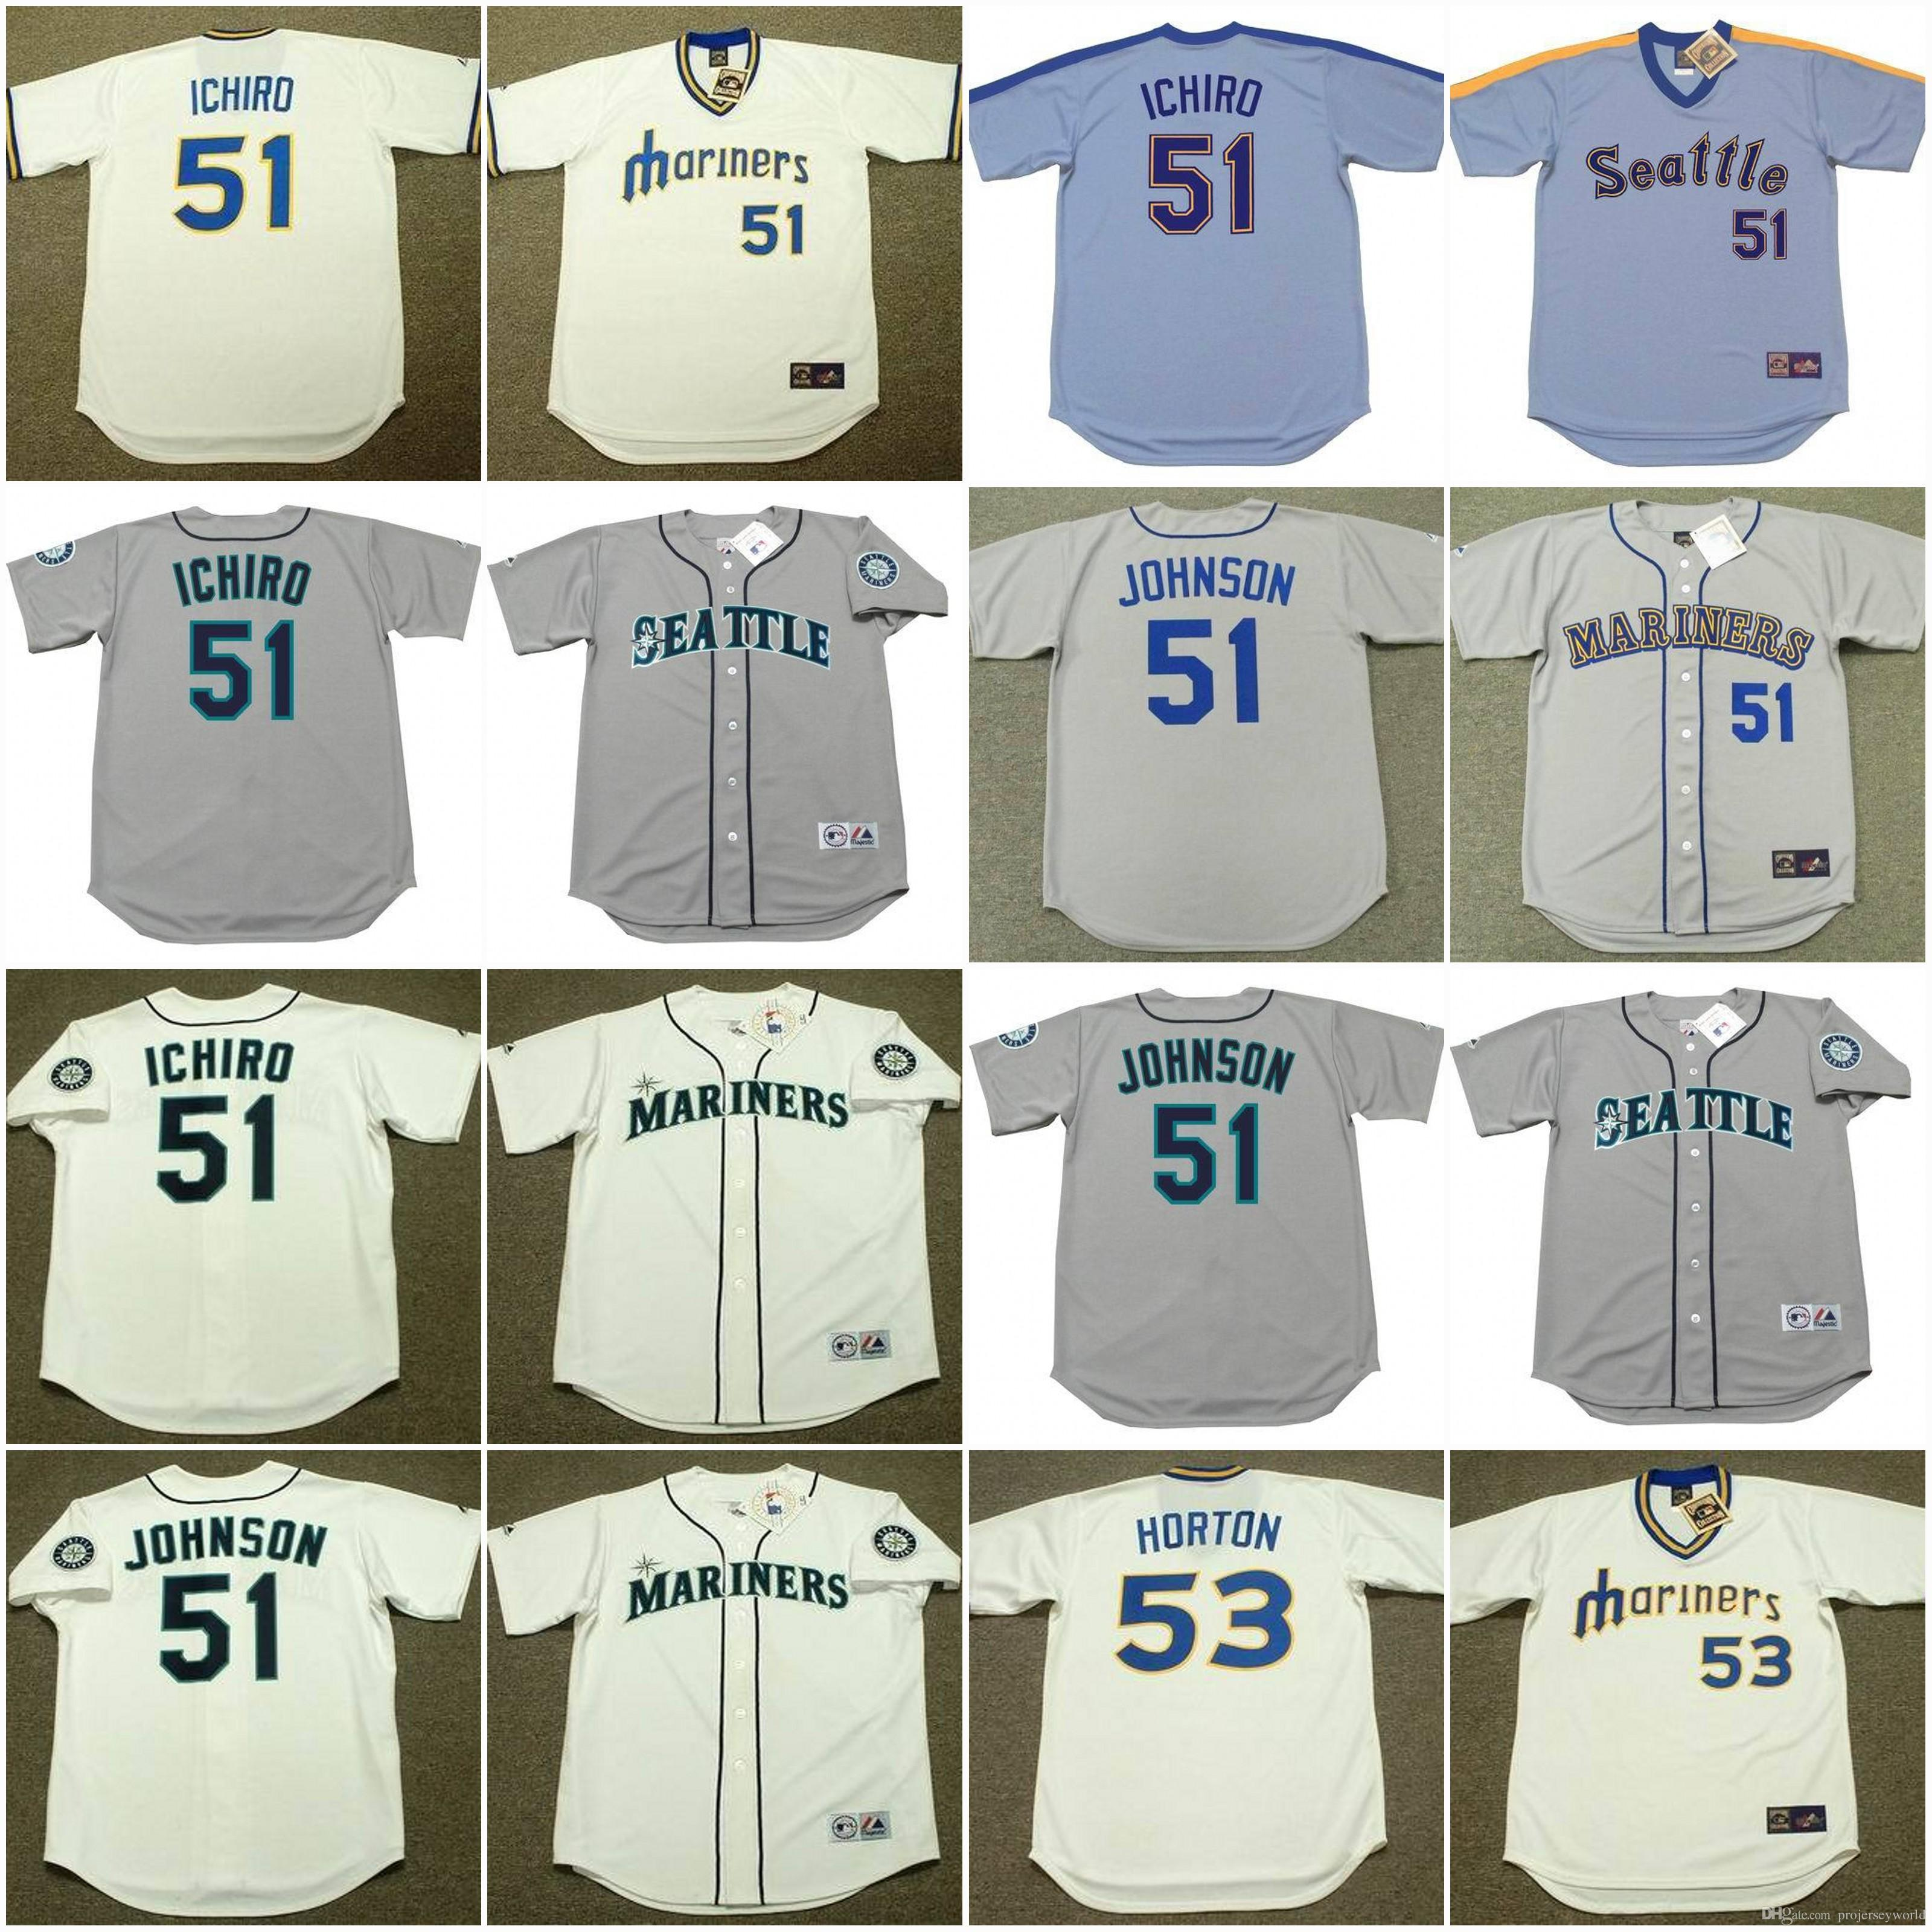 a792f397db3 seattle mariners ichiro suzuki 51 grey authentic mlb jersey sale